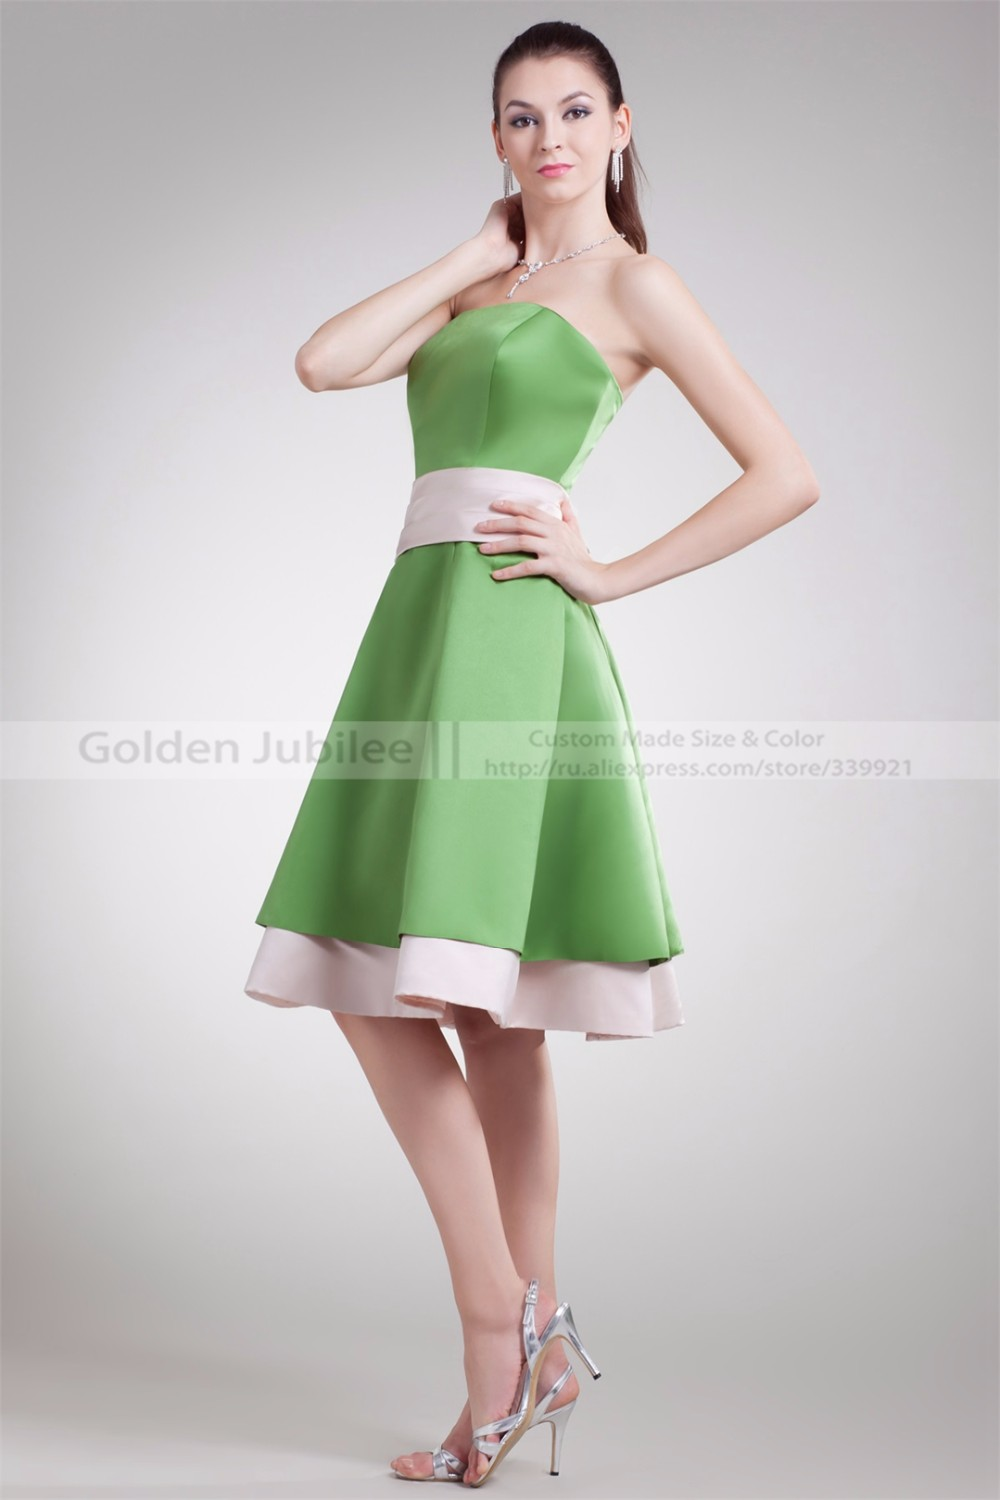 Satin-Strapless-Sleeveless-A-Line-Tiered-Special-Occasion-Dresses-23251-85266